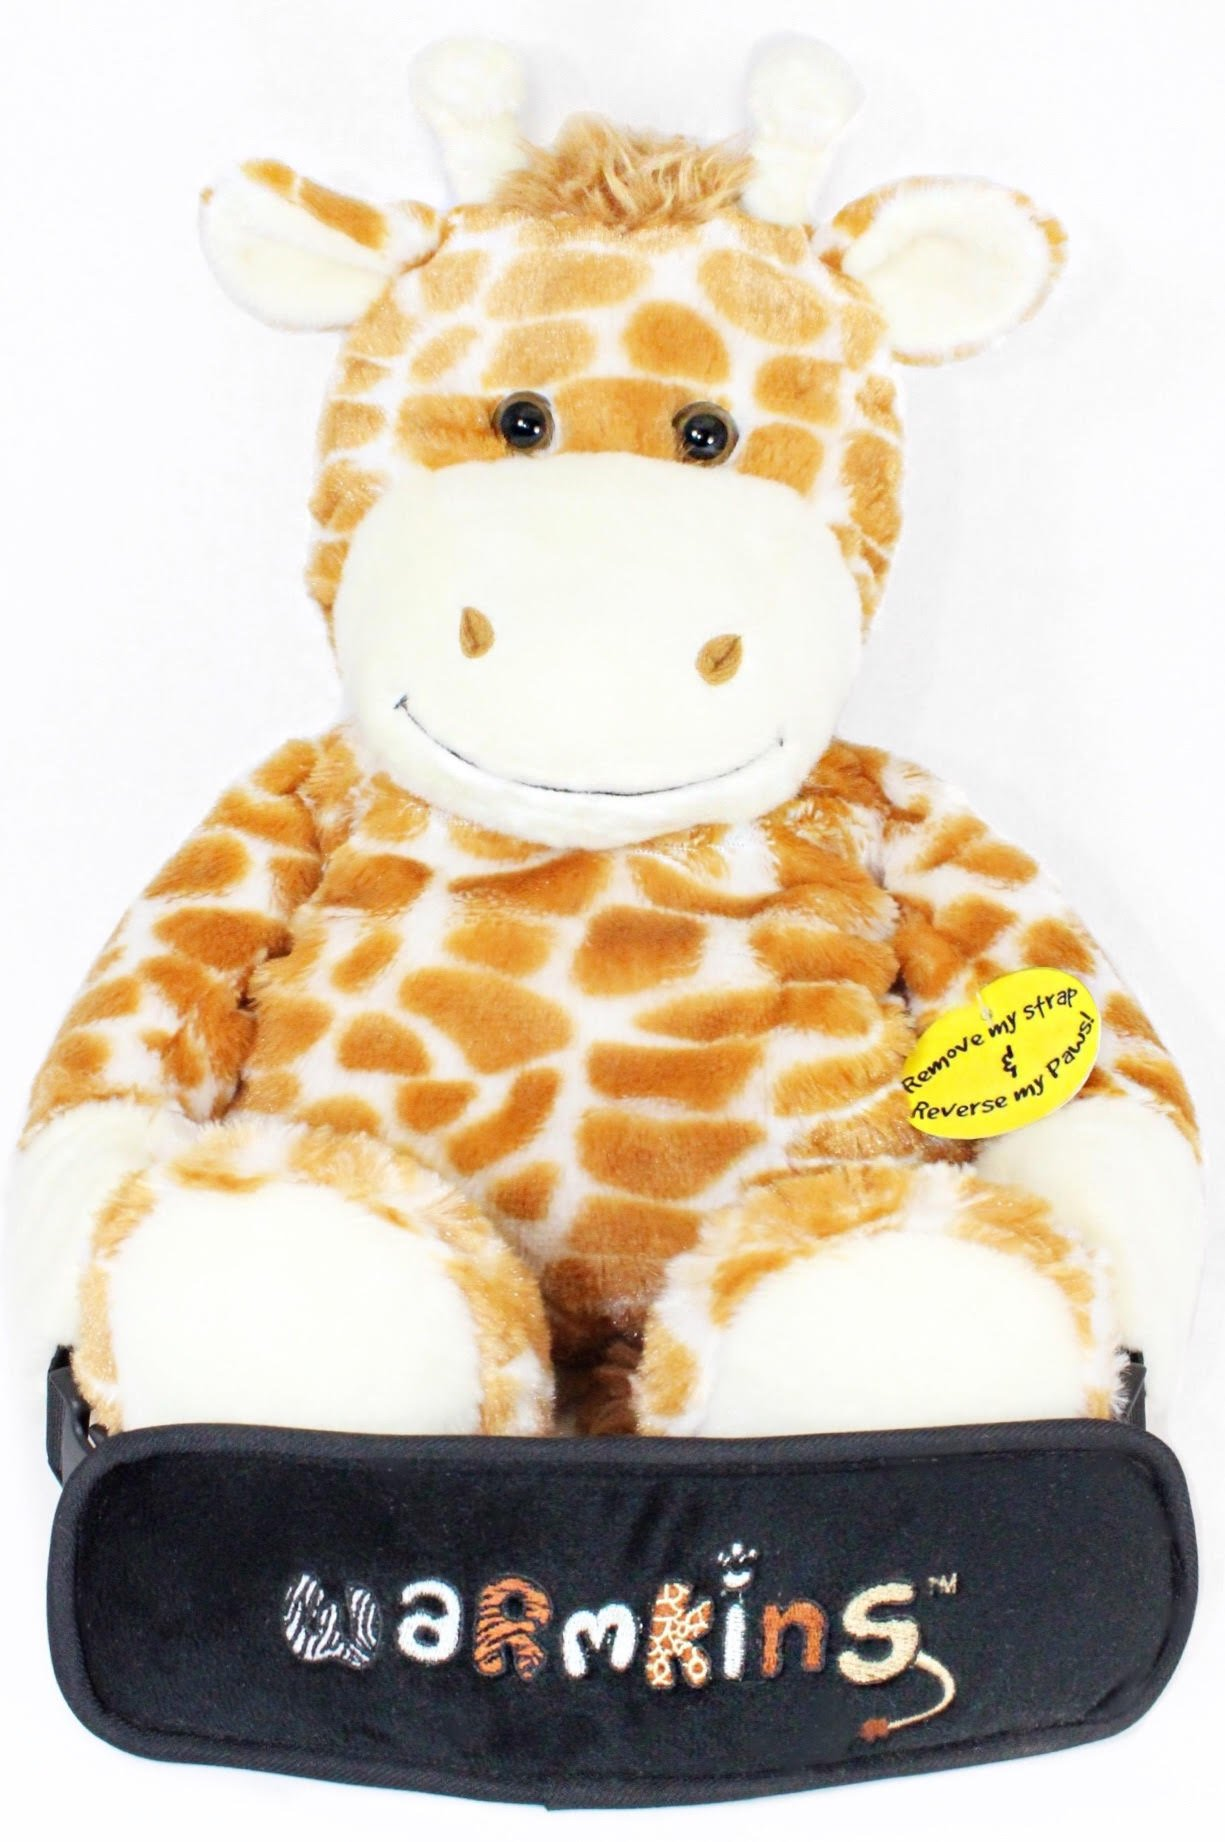 Winston Warmkins Original 18'' Weighted Sensory Plush Giraffe Feels Like a Warm-Hug,Therapeutic,Calming,Comforting.Hot/Cold,Microwavable,Doubles as Backpack and Storage,Removable Straps,Reversible Paws by Warmkins via Orly's Dream